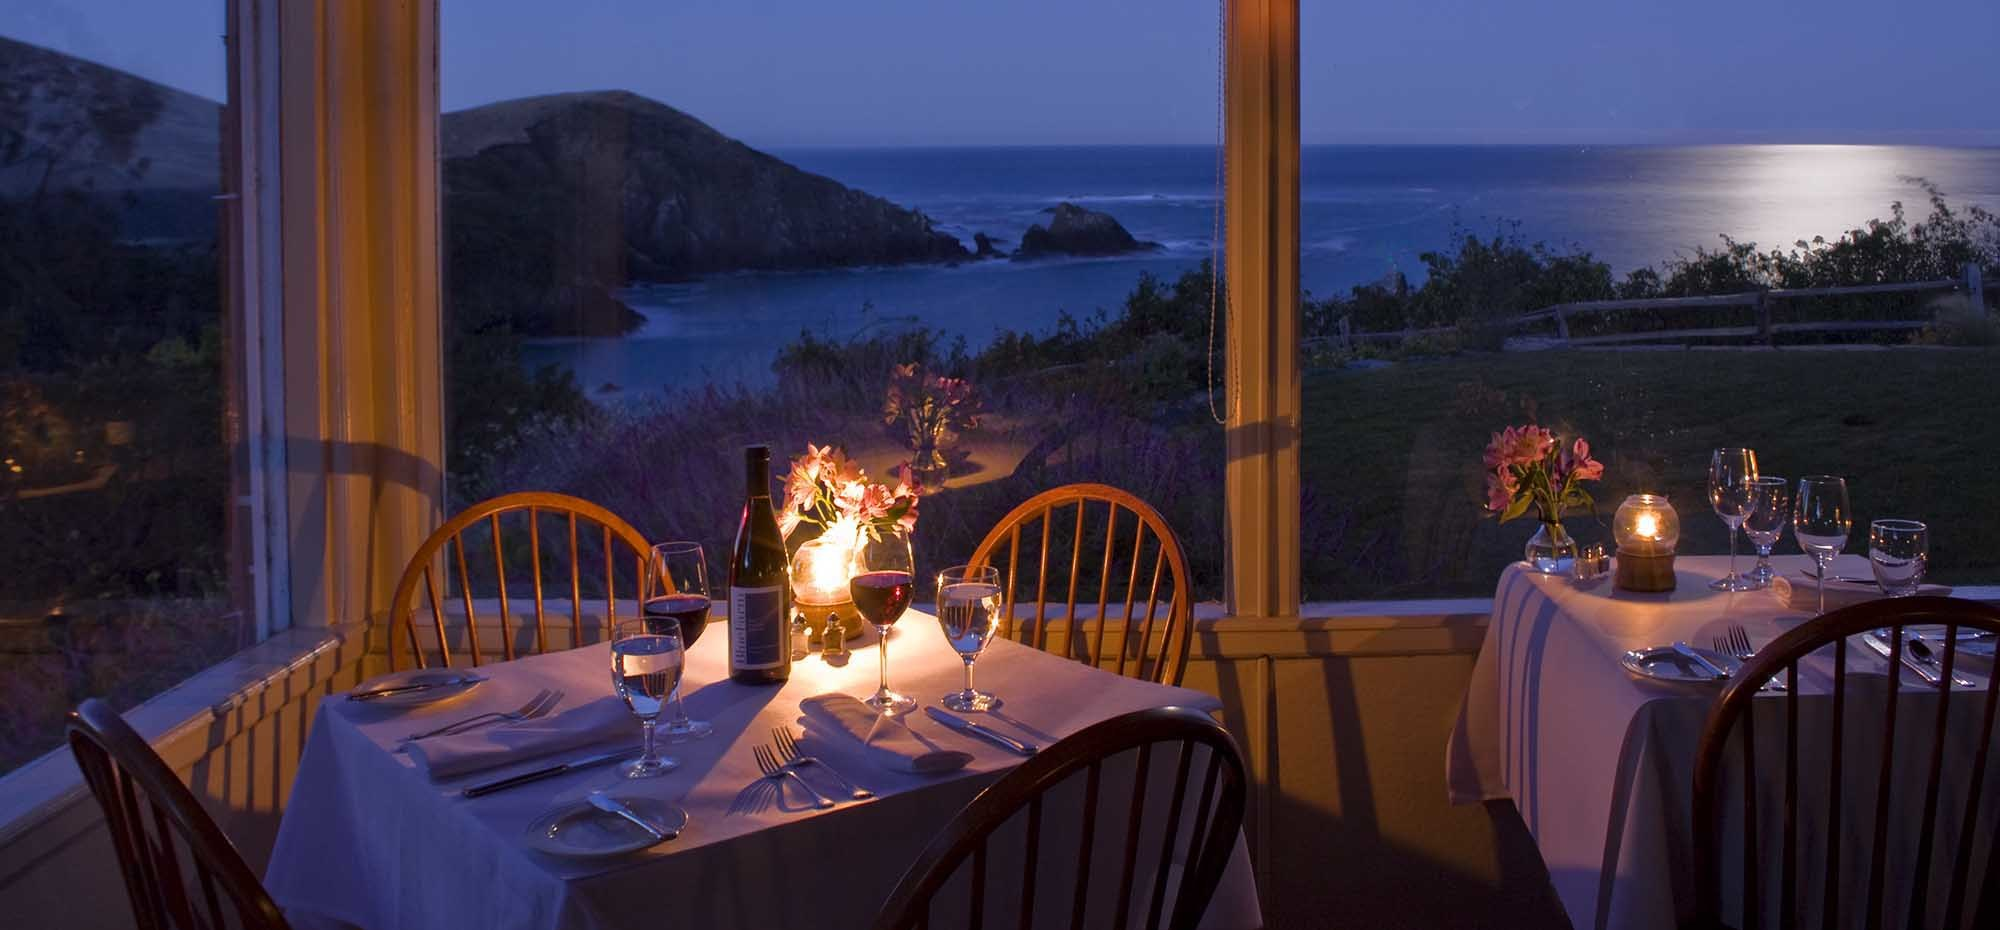 5 Romantic Things To Do on the Mendocino Coast, Albion River Inn